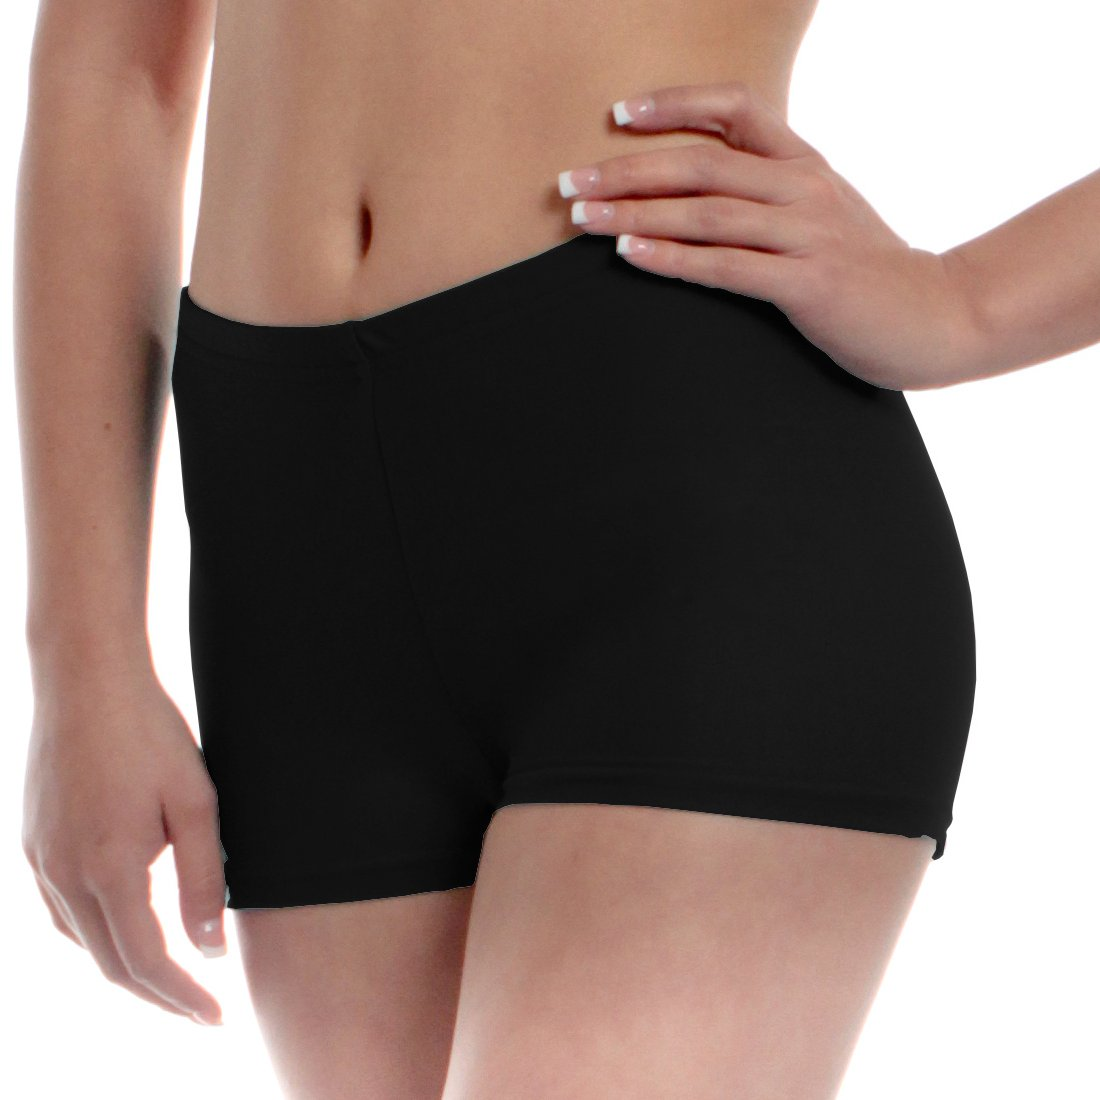 Mens Long Dance Shorts Small Black by B Dancewear Adult Sizes by Bailar Dancewear